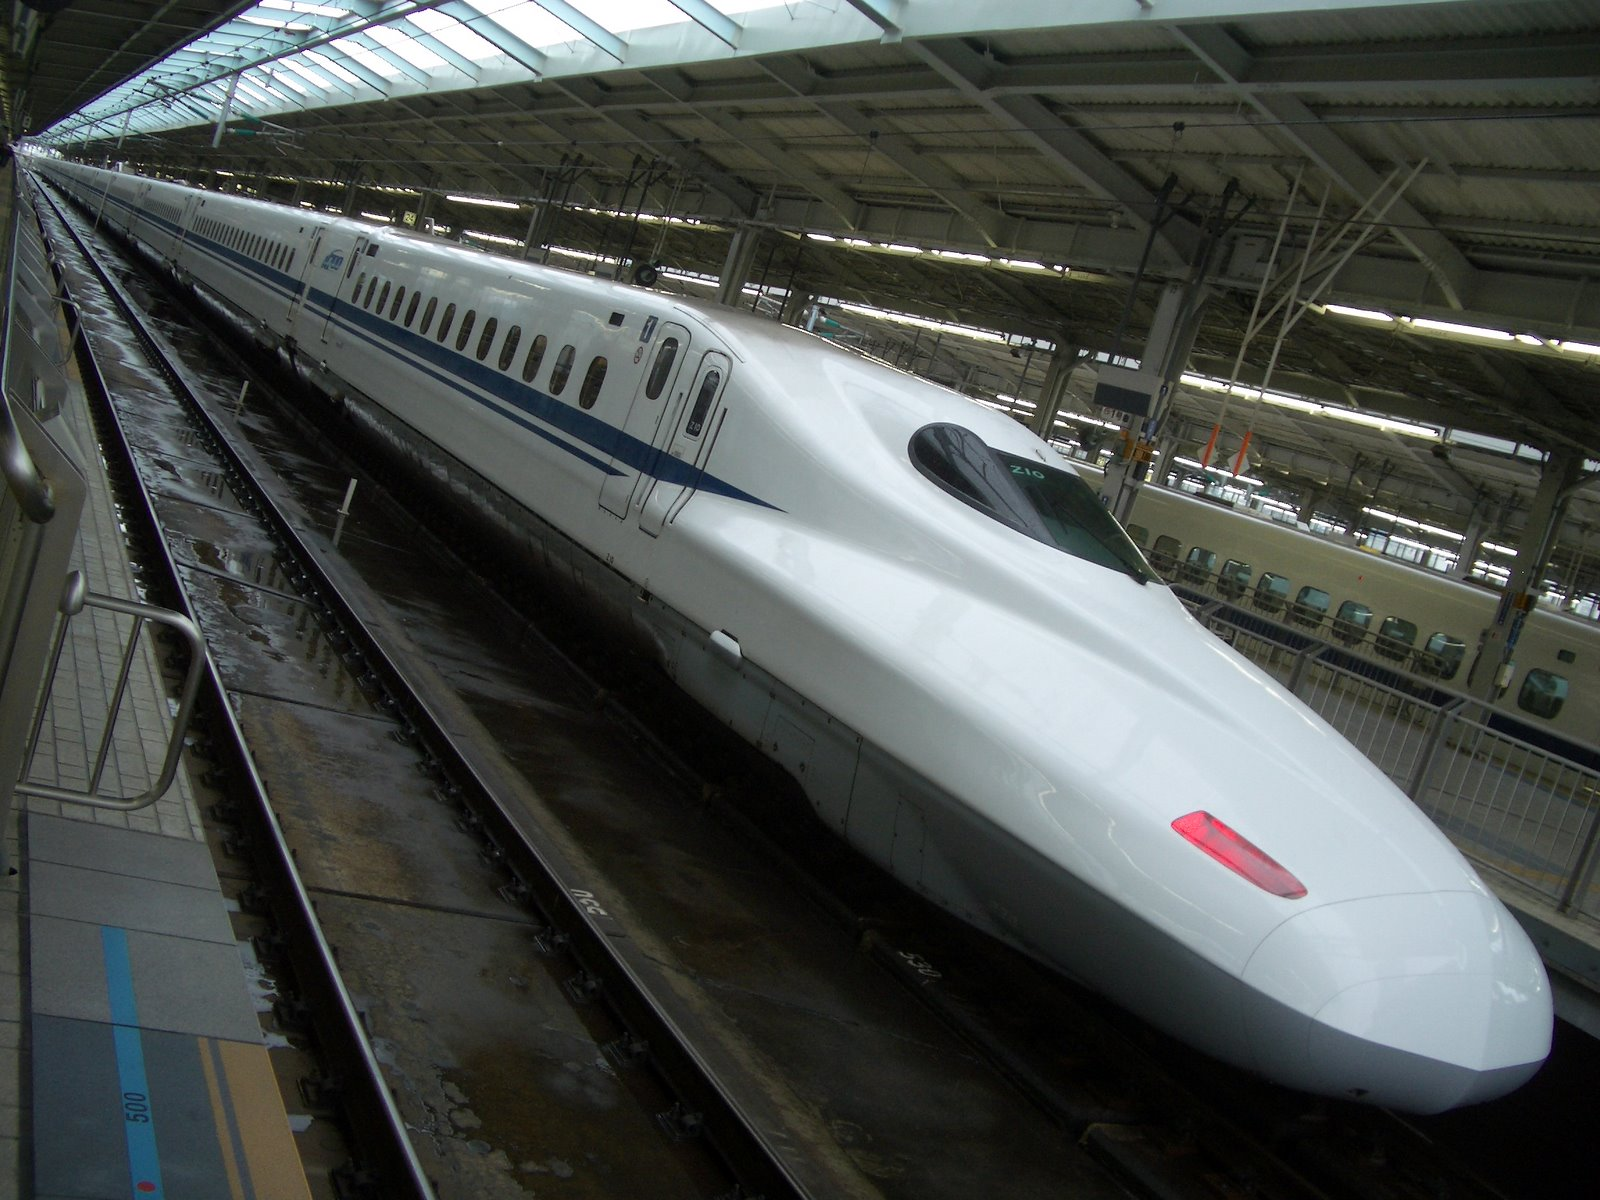 There is plenty to see beyond Tokyo, and the Shinkansen, which debuted just before the 1964 Tokyo Olympics, is one of the best ways to explore Japan.